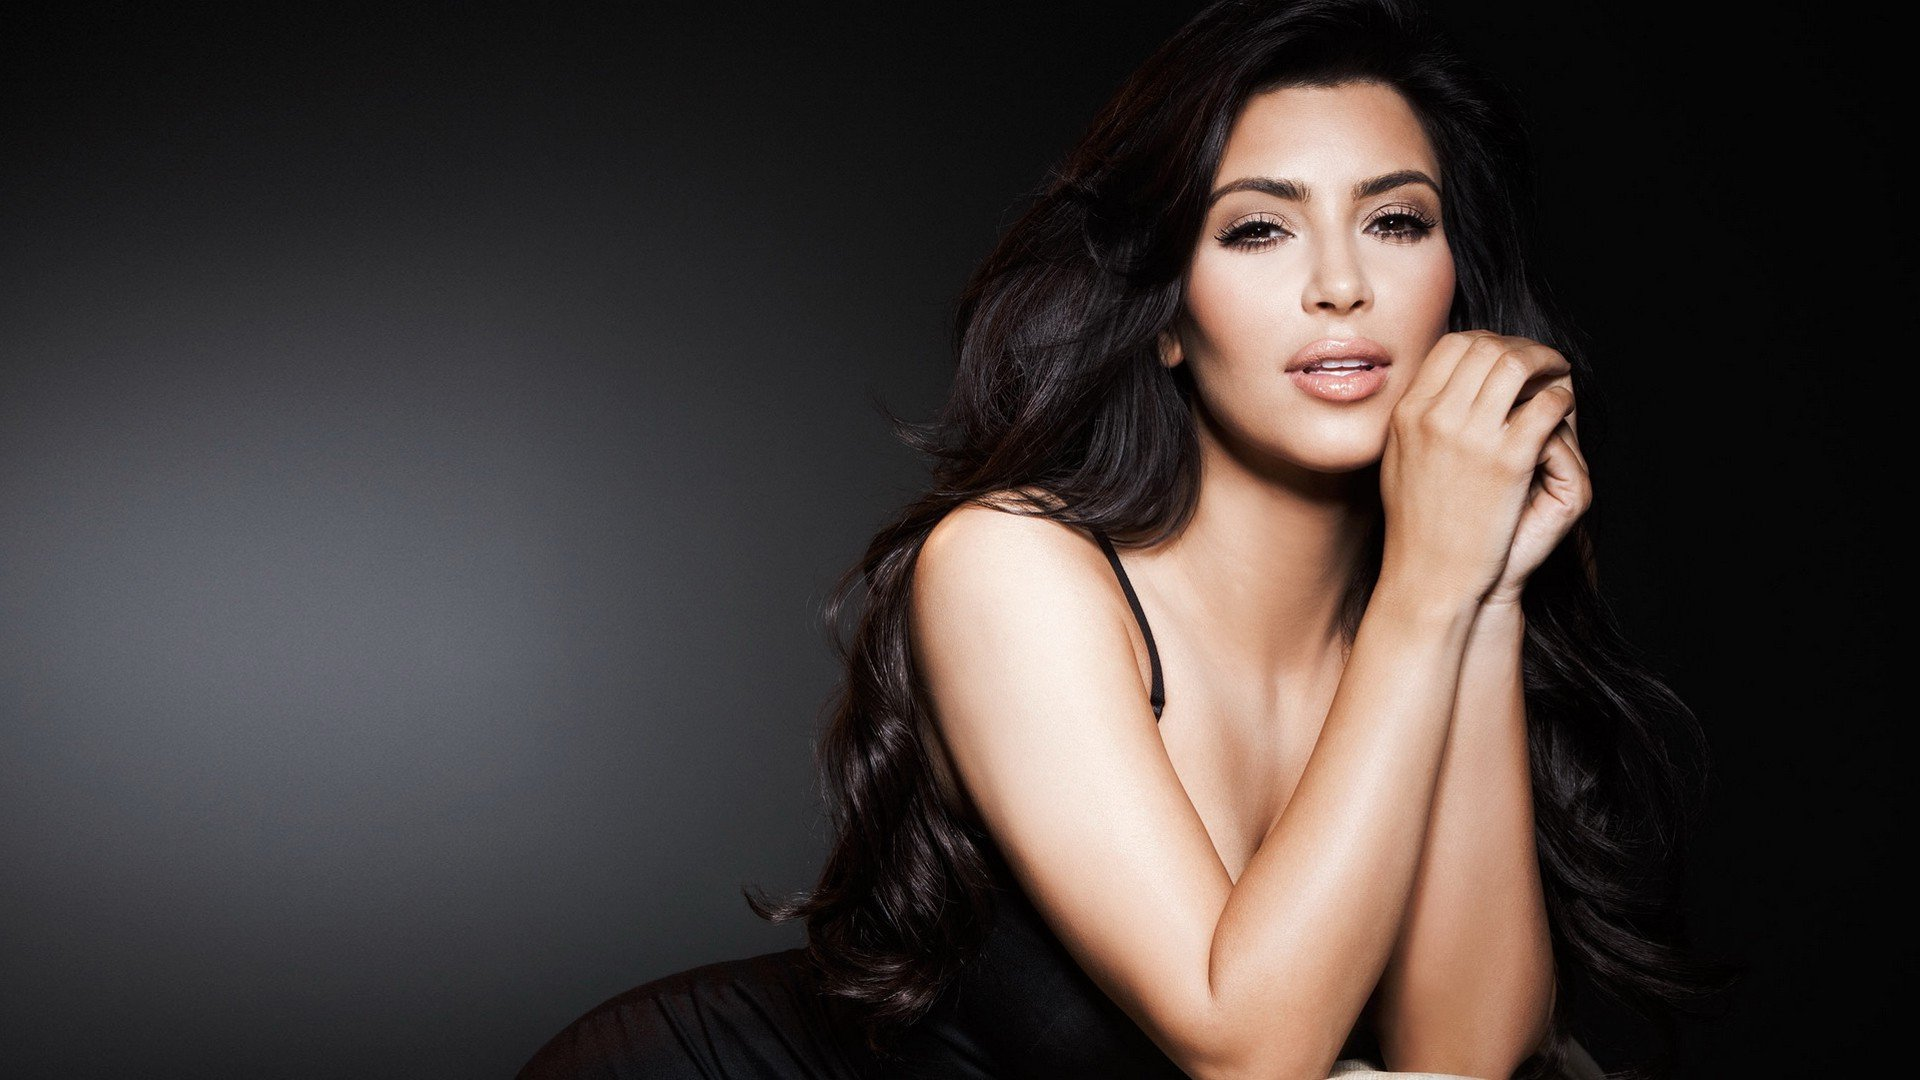 Kim K Lures Back Fans With This After 100,000 People Unfollowed Her Over Fake Body